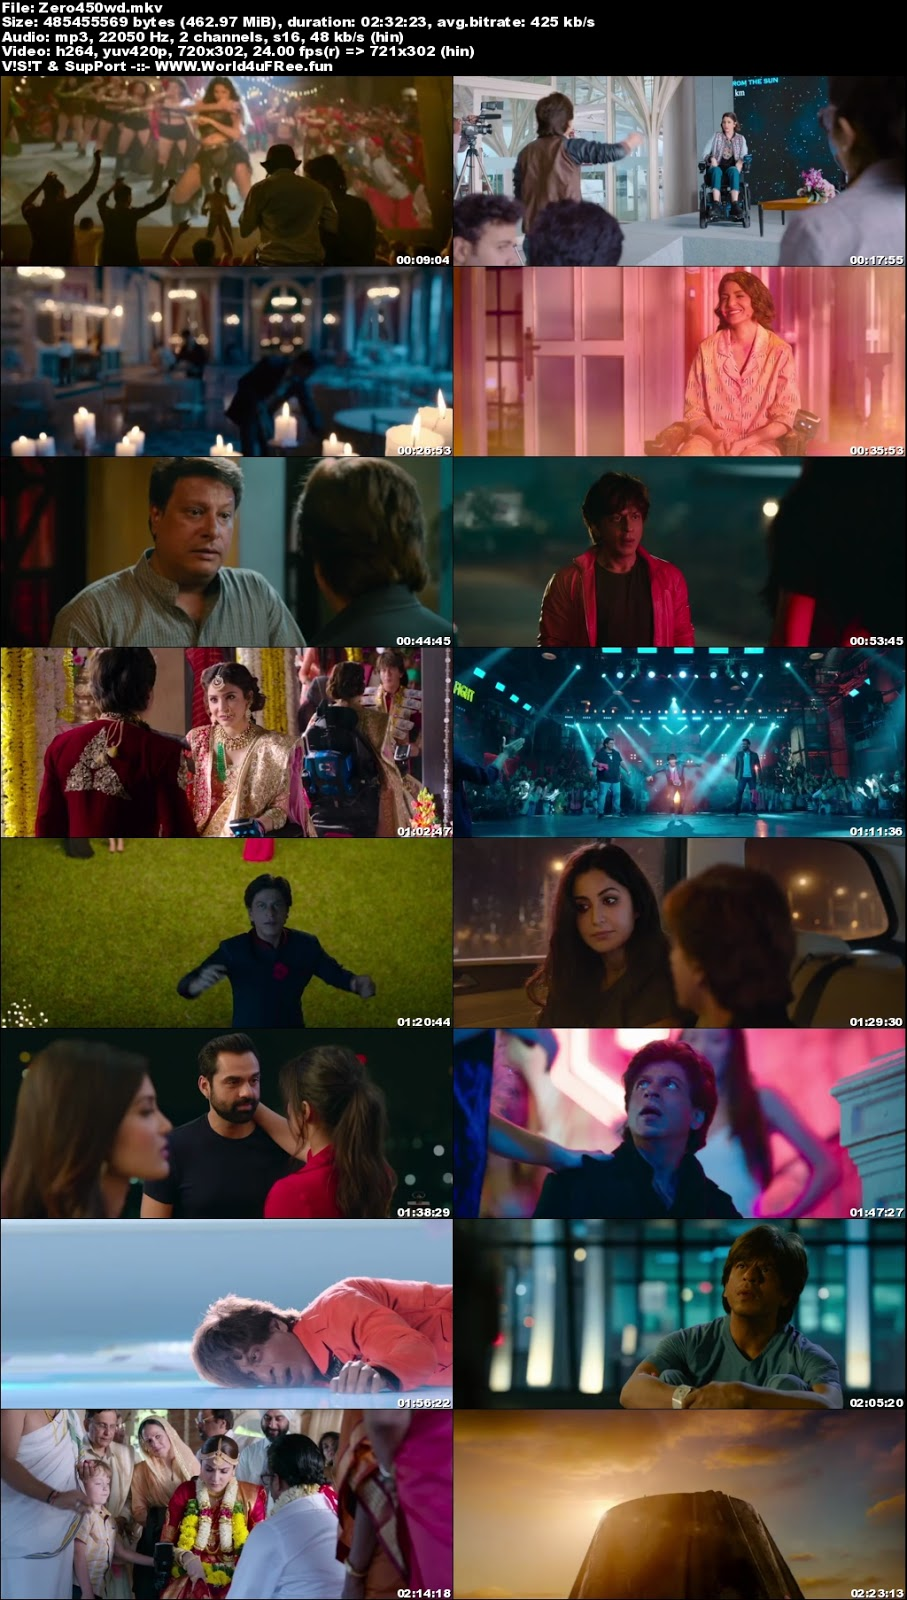 Zero 2018 Hindi 480p WEB HDRip 450Mb x264 world4ufree.cool , hindi movie Zero 2018 hdrip 720p bollywood movie Zero 2018 720p LATEST MOVie Zero 2018 720p DVDRip NEW MOVIE Zero 2018 720p WEBHD 700mb free download or watch online at world4ufree.cool